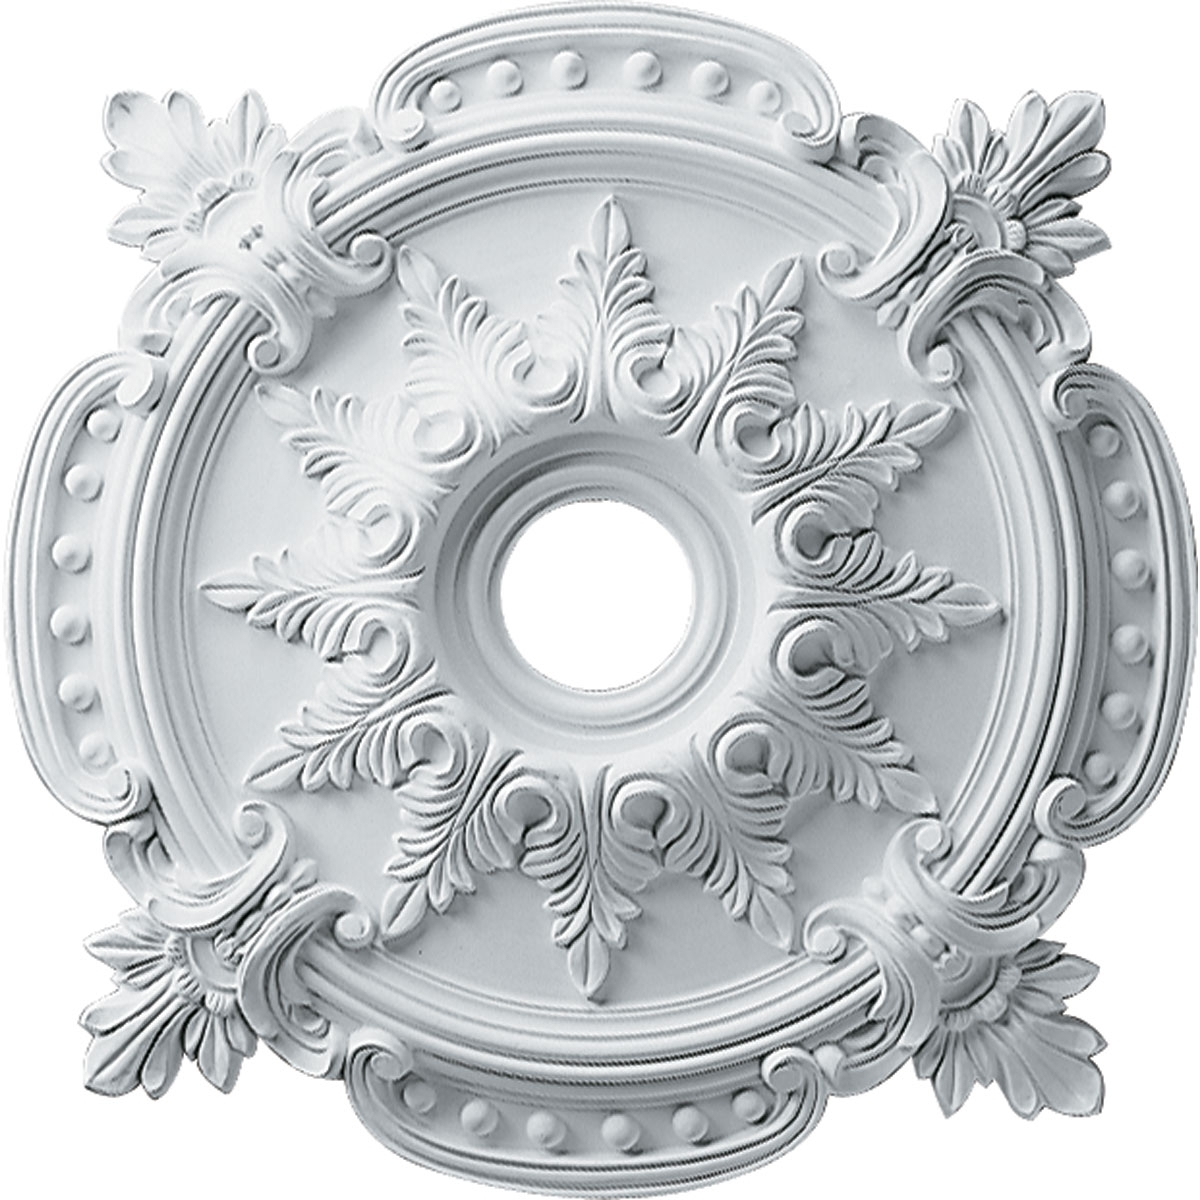 Ceiling Medallions Wall Art – Ceiling Medallions Buying Guides To Pertaining To Current Ceiling Medallion Wall Art (View 9 of 15)